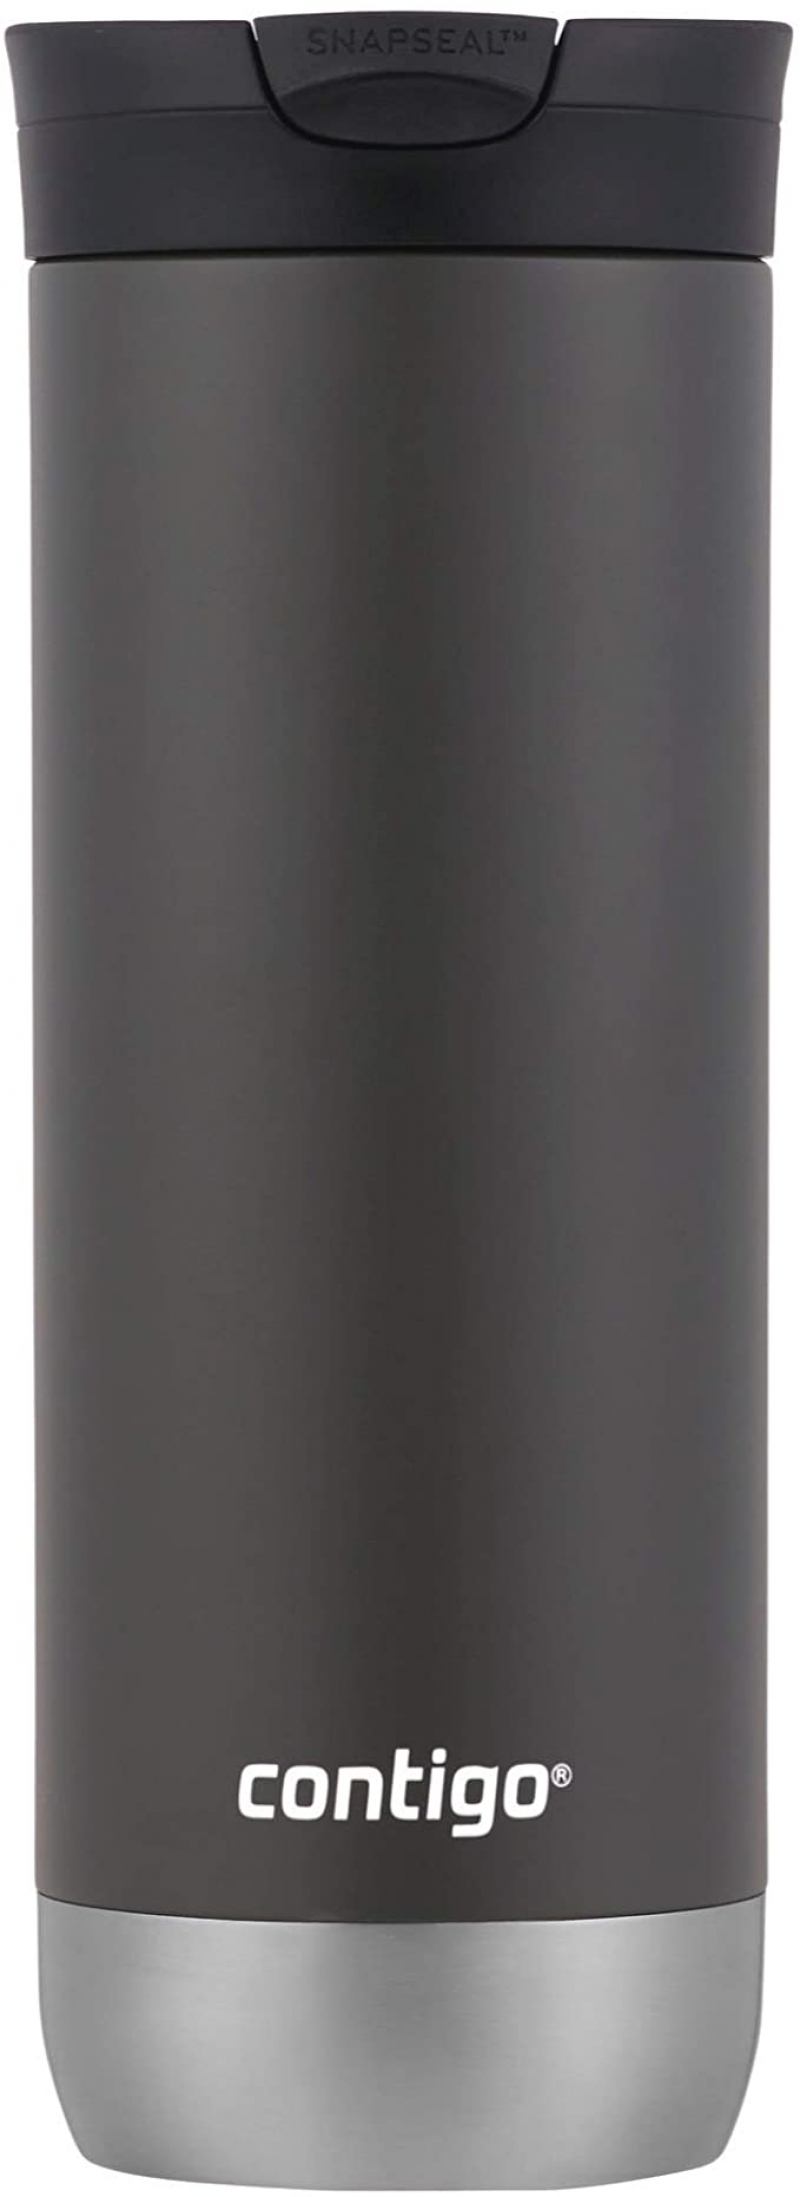 ihocon: Contigo Snapseal Insulated Travel Mug, 20 oz 保溫杯